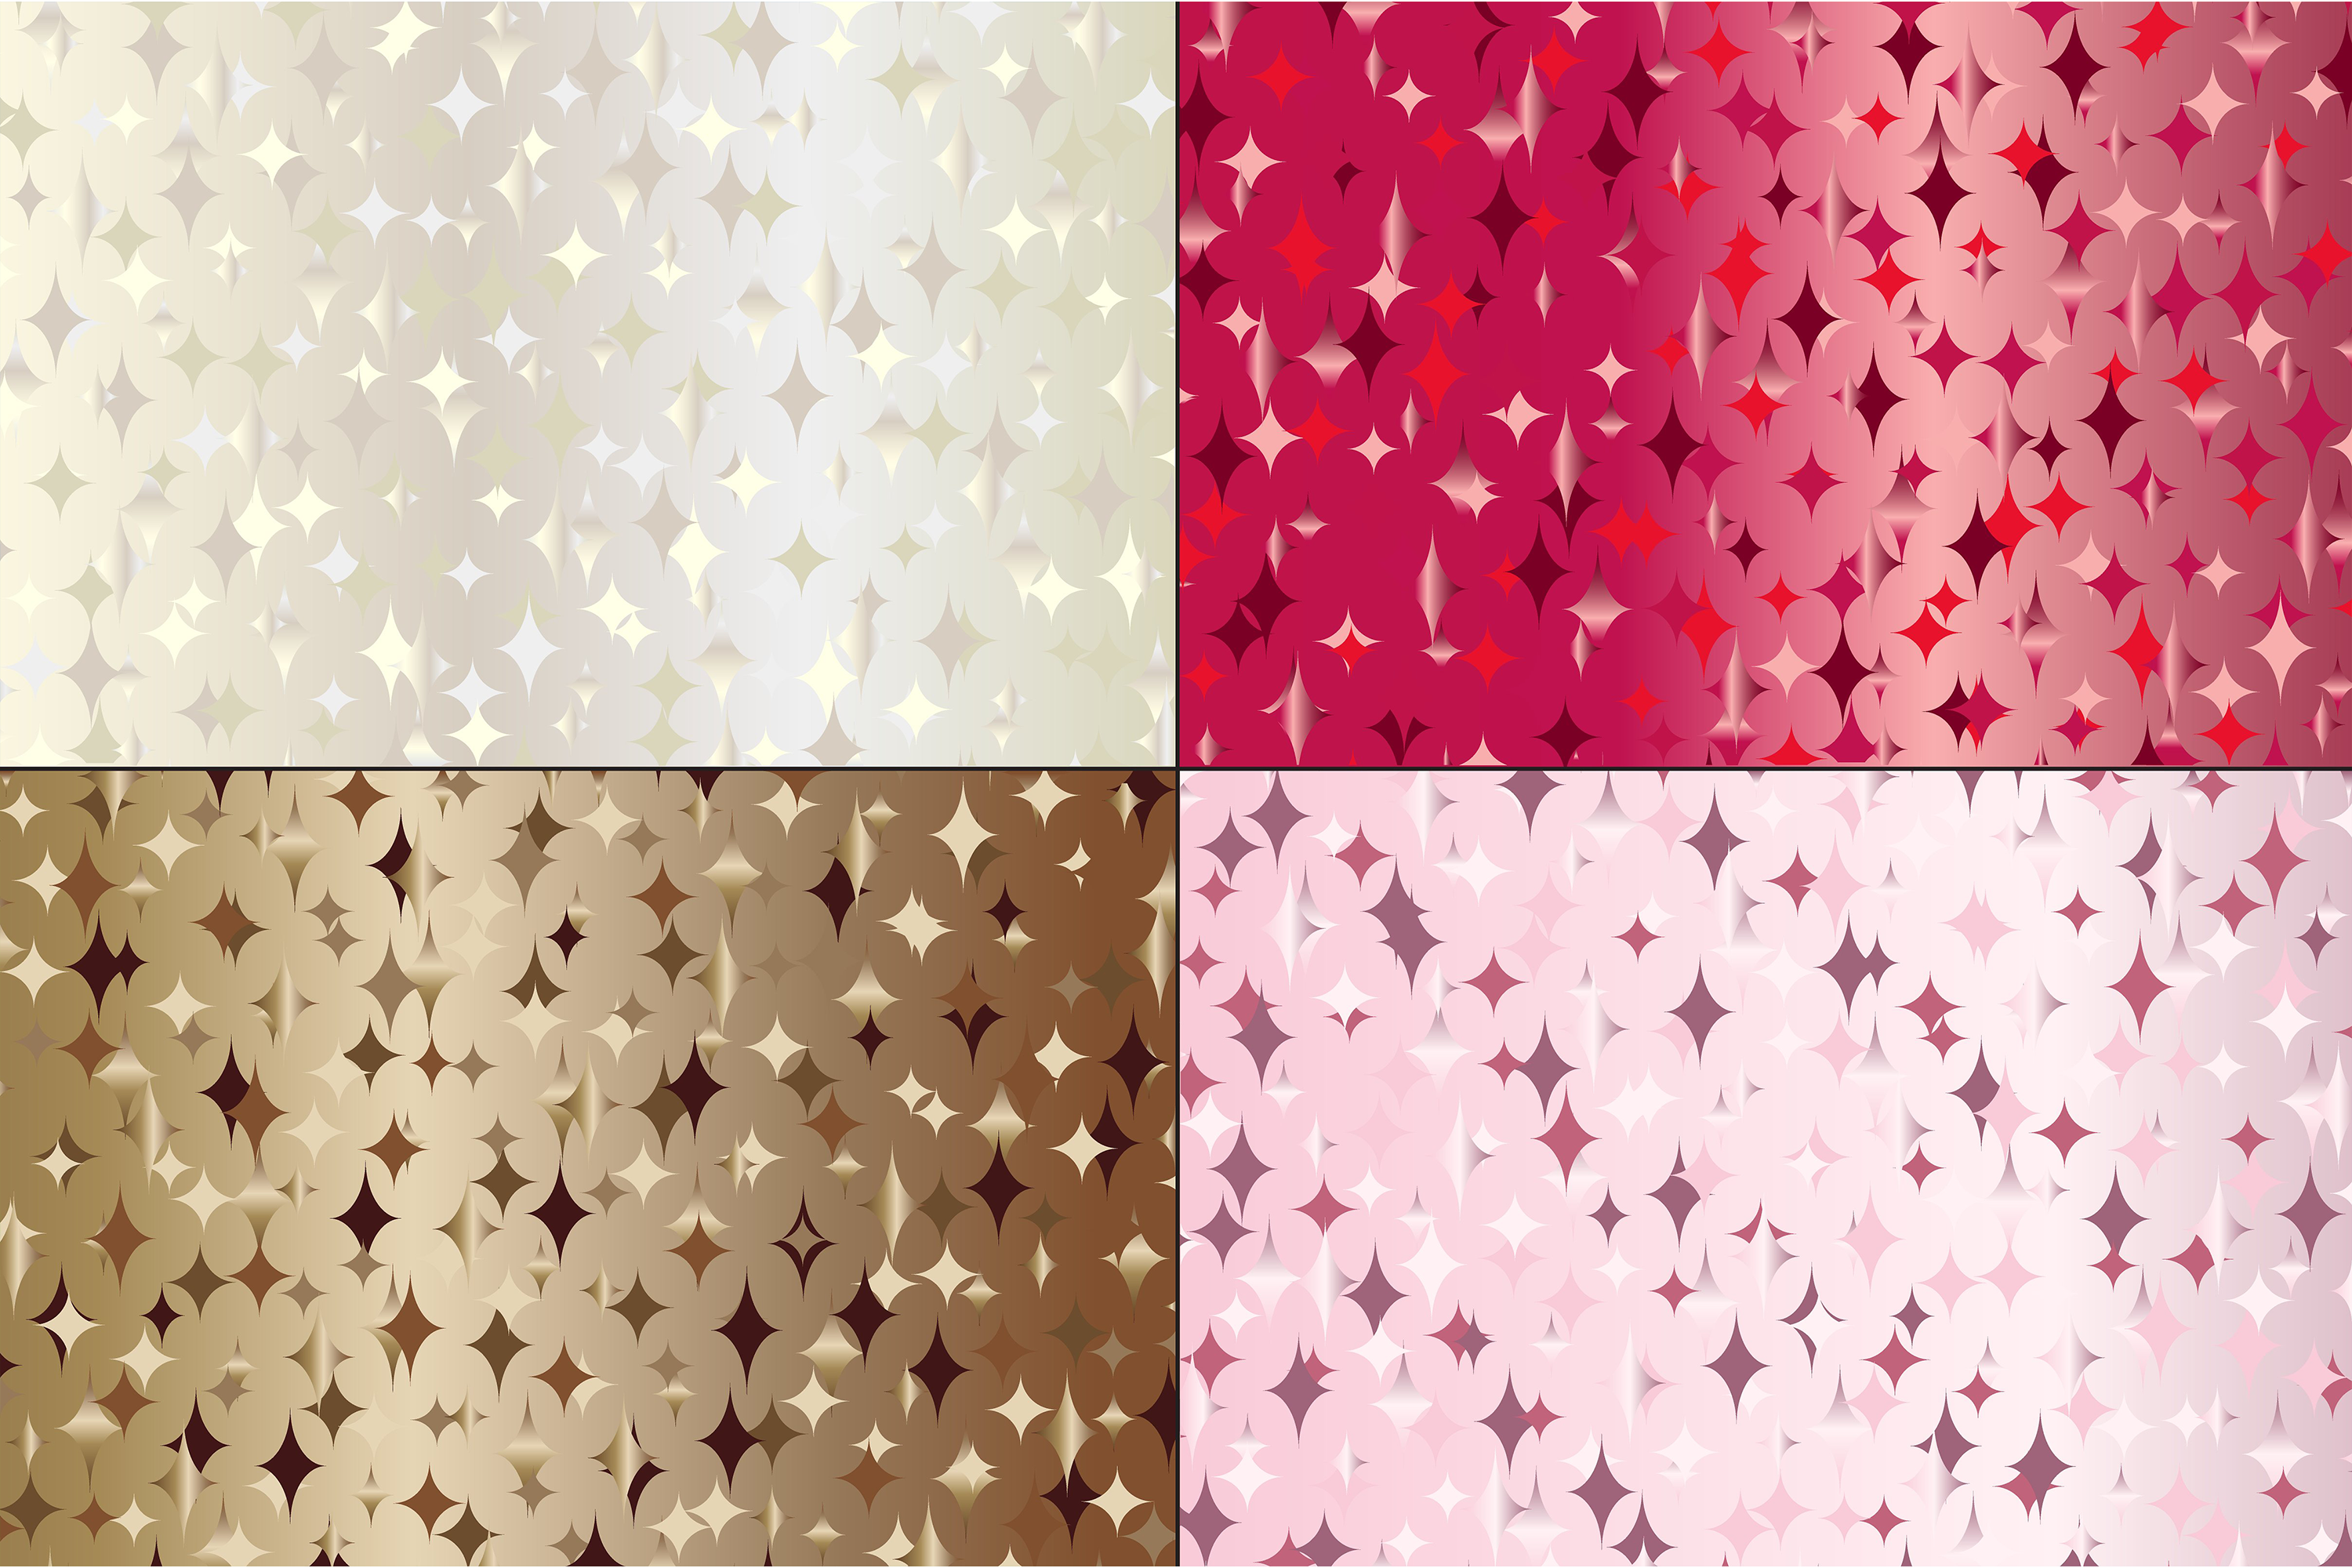 Sparkle Gradient Backgrounds example image 4